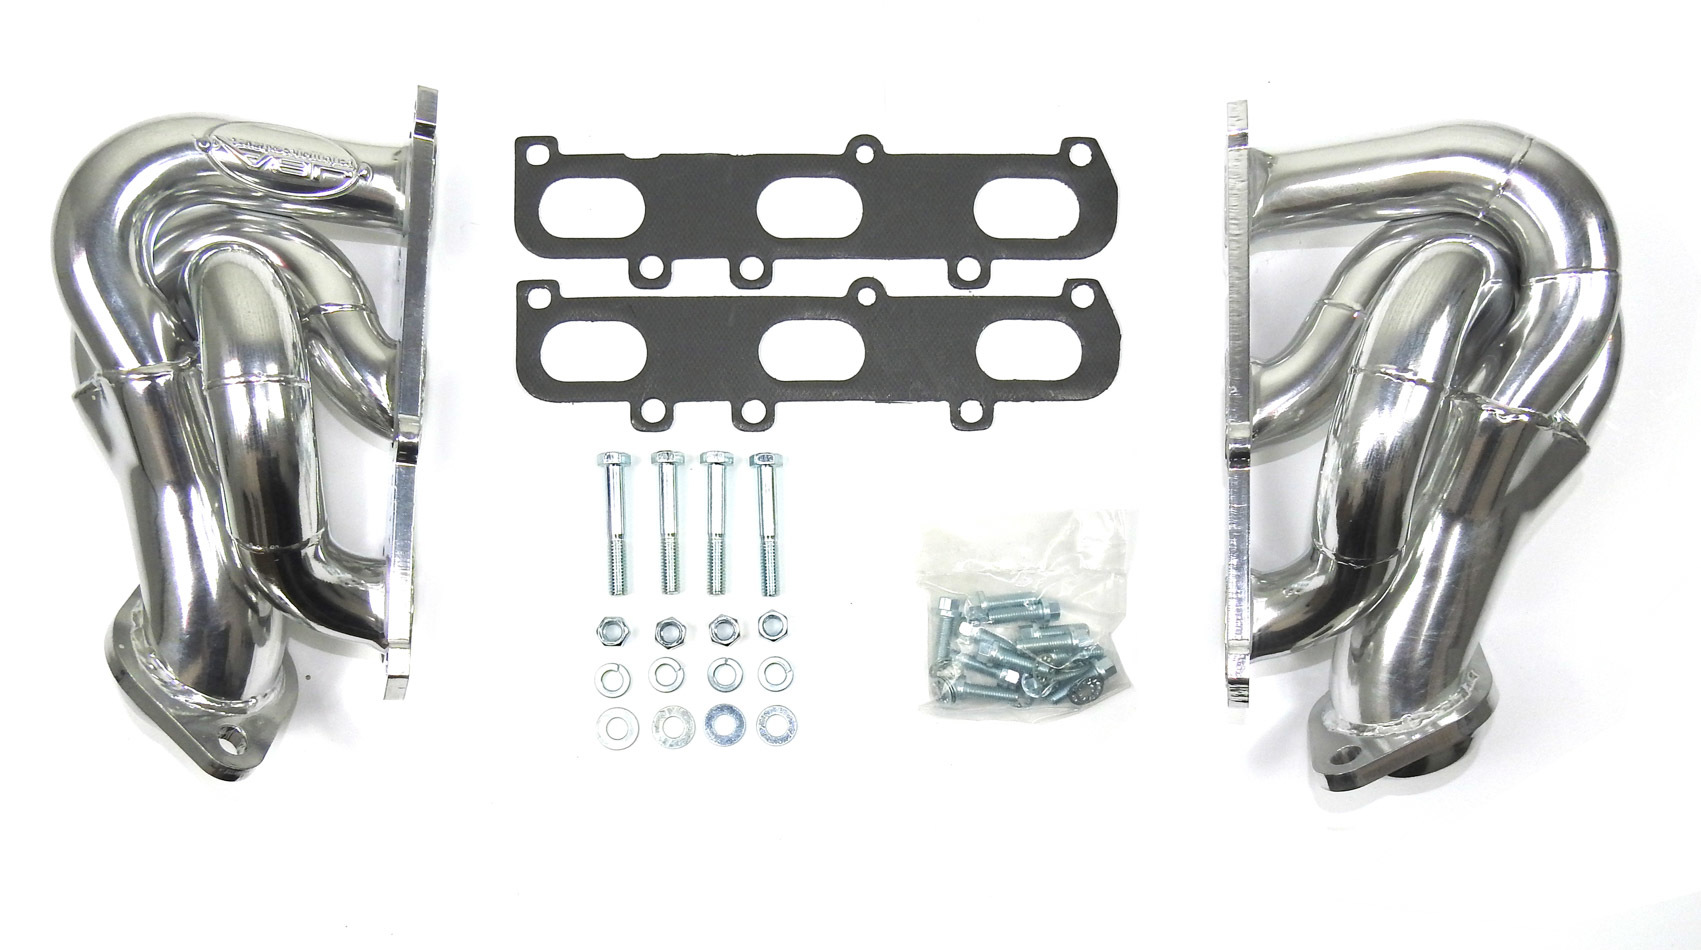 JBA Exhaust 1682SJS Headers, Cat4ward, Shorty Style, 1-5/8 in Primary, 2-1/2 in Collector, Stainless, Silver Ceramic, 3.5 / 3.7 L, Ford EcoBoost, Ford Fullsize Truck 2011-17, Kit